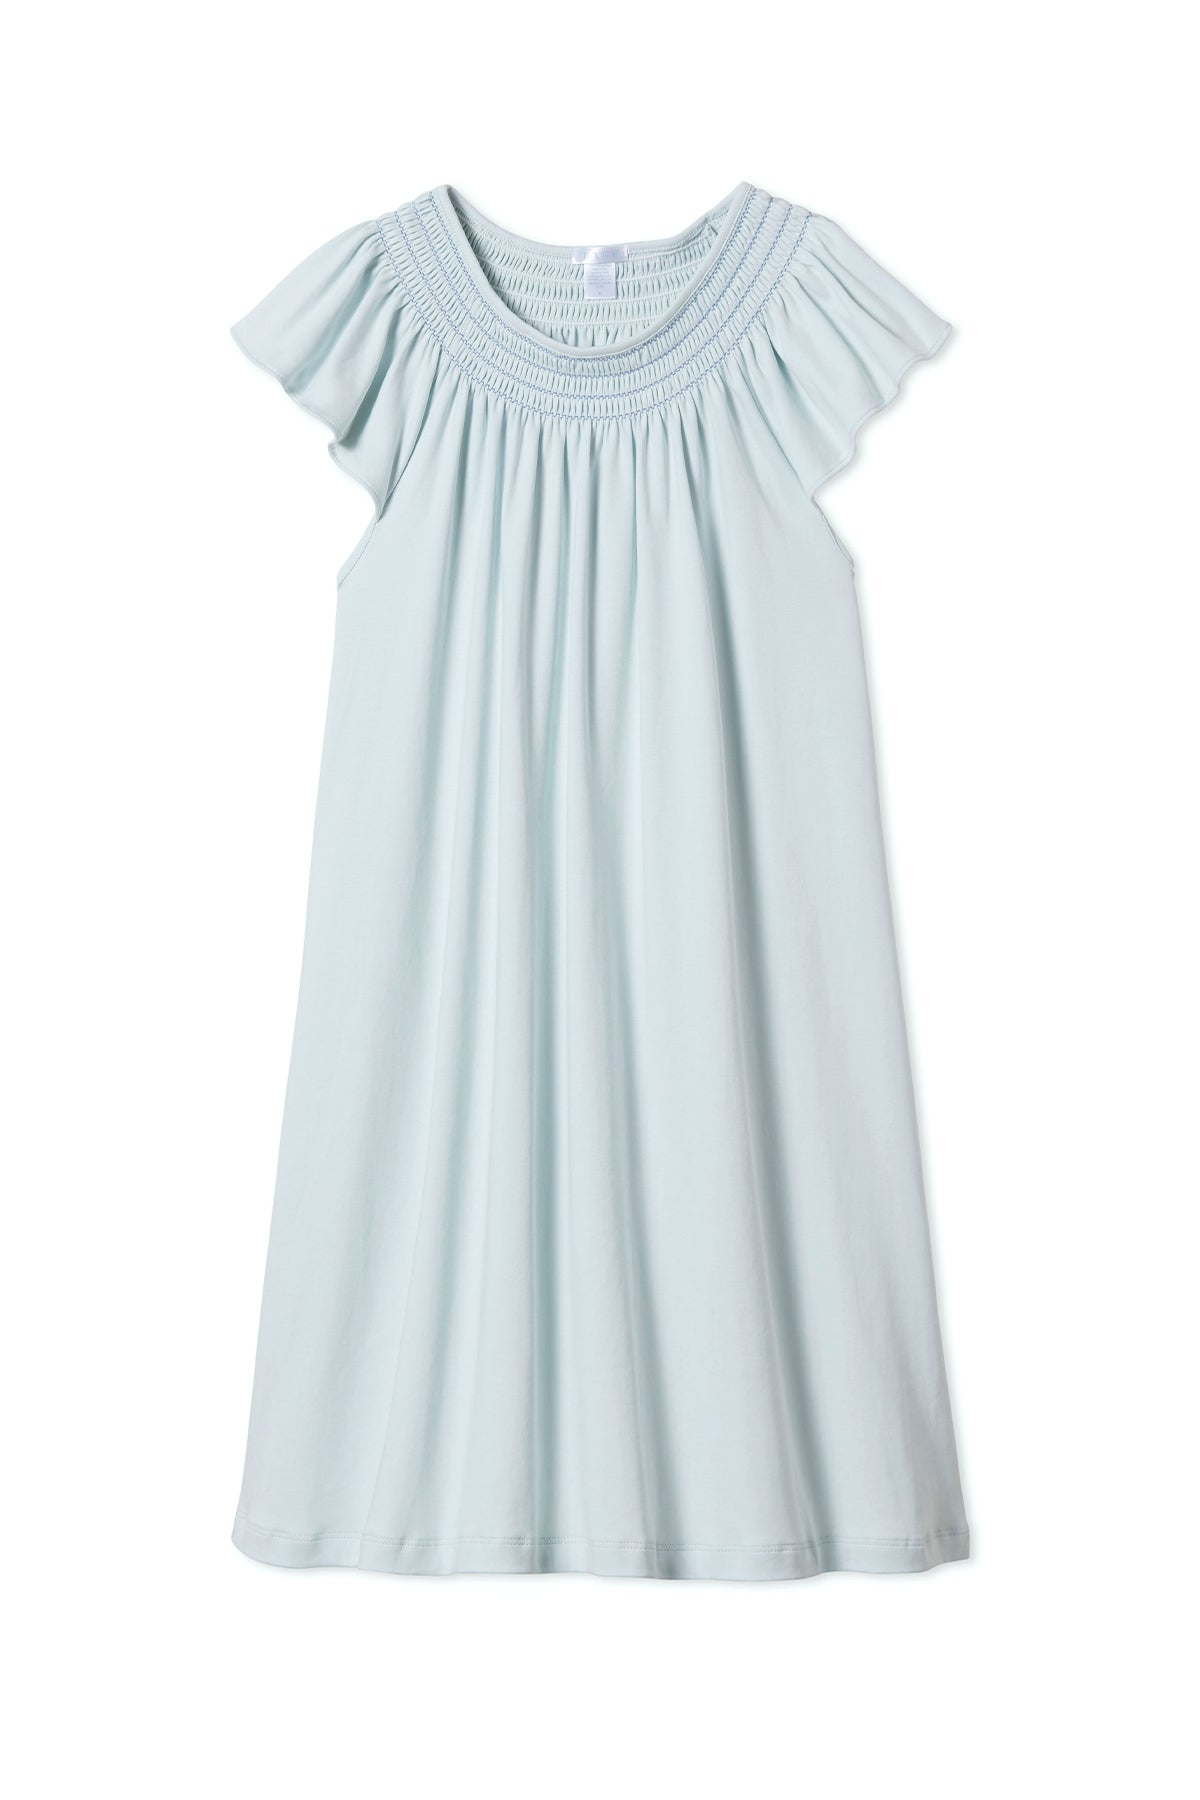 Pima Smocked Flutter Nightgown in Air